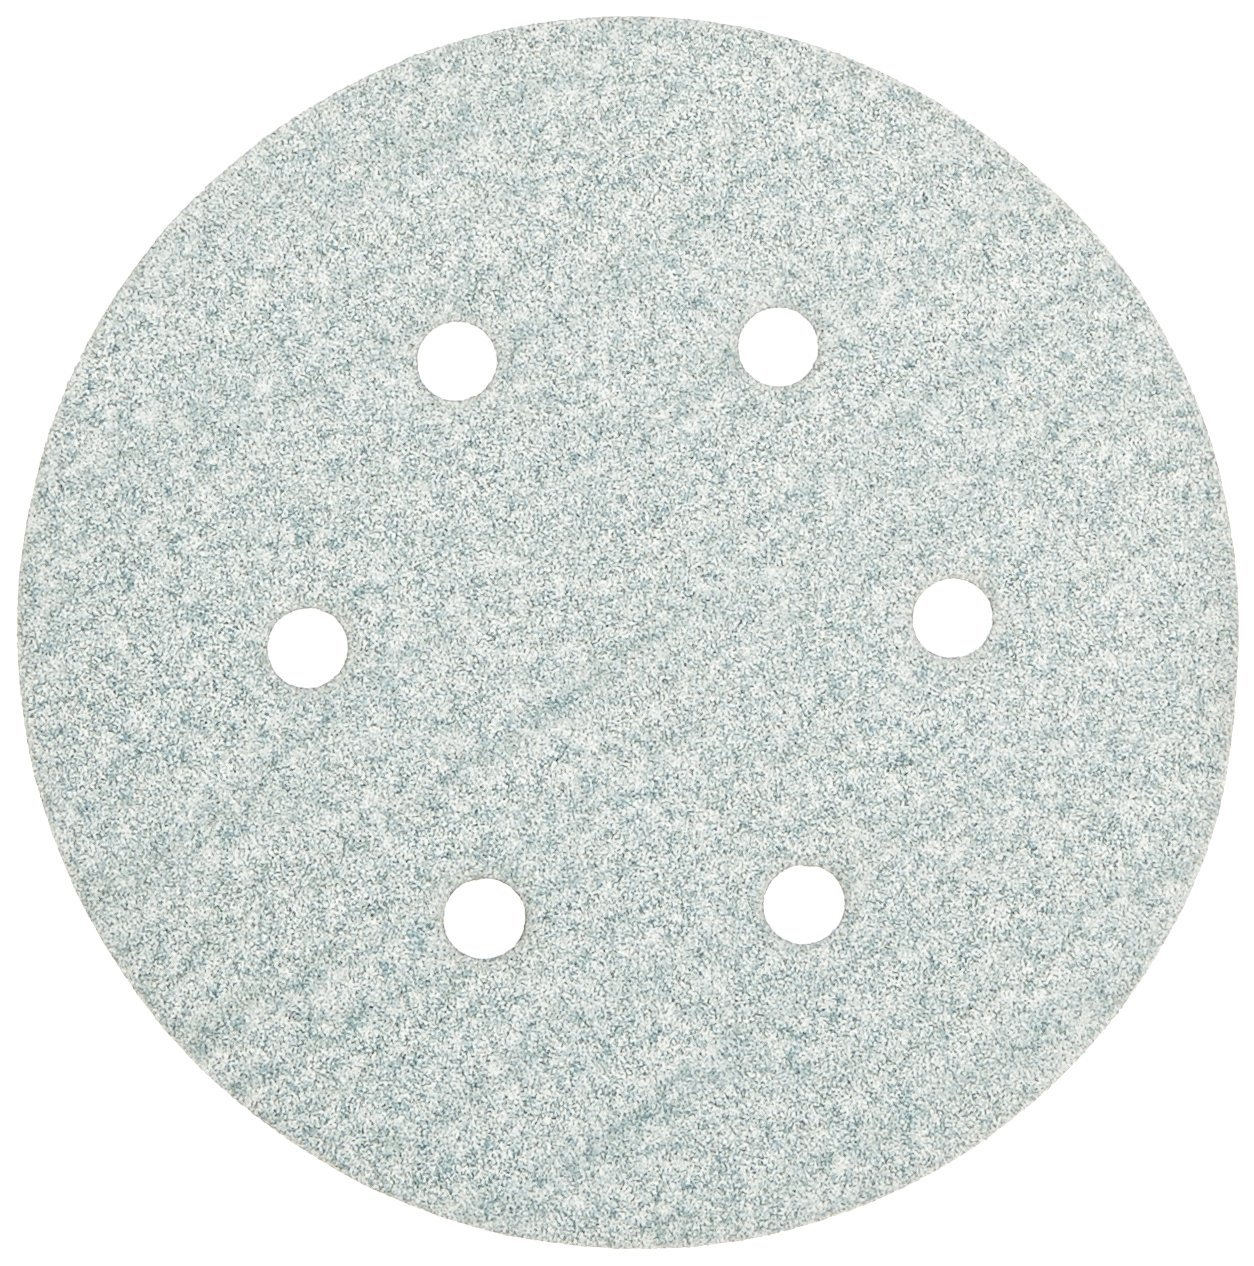 "Norton 3X High Performance Hook and Sand Paper Discs with 6 Hole, Ceramic Alumina, 6"" Diameter, Grit P100 Medium (Pack of 10)"